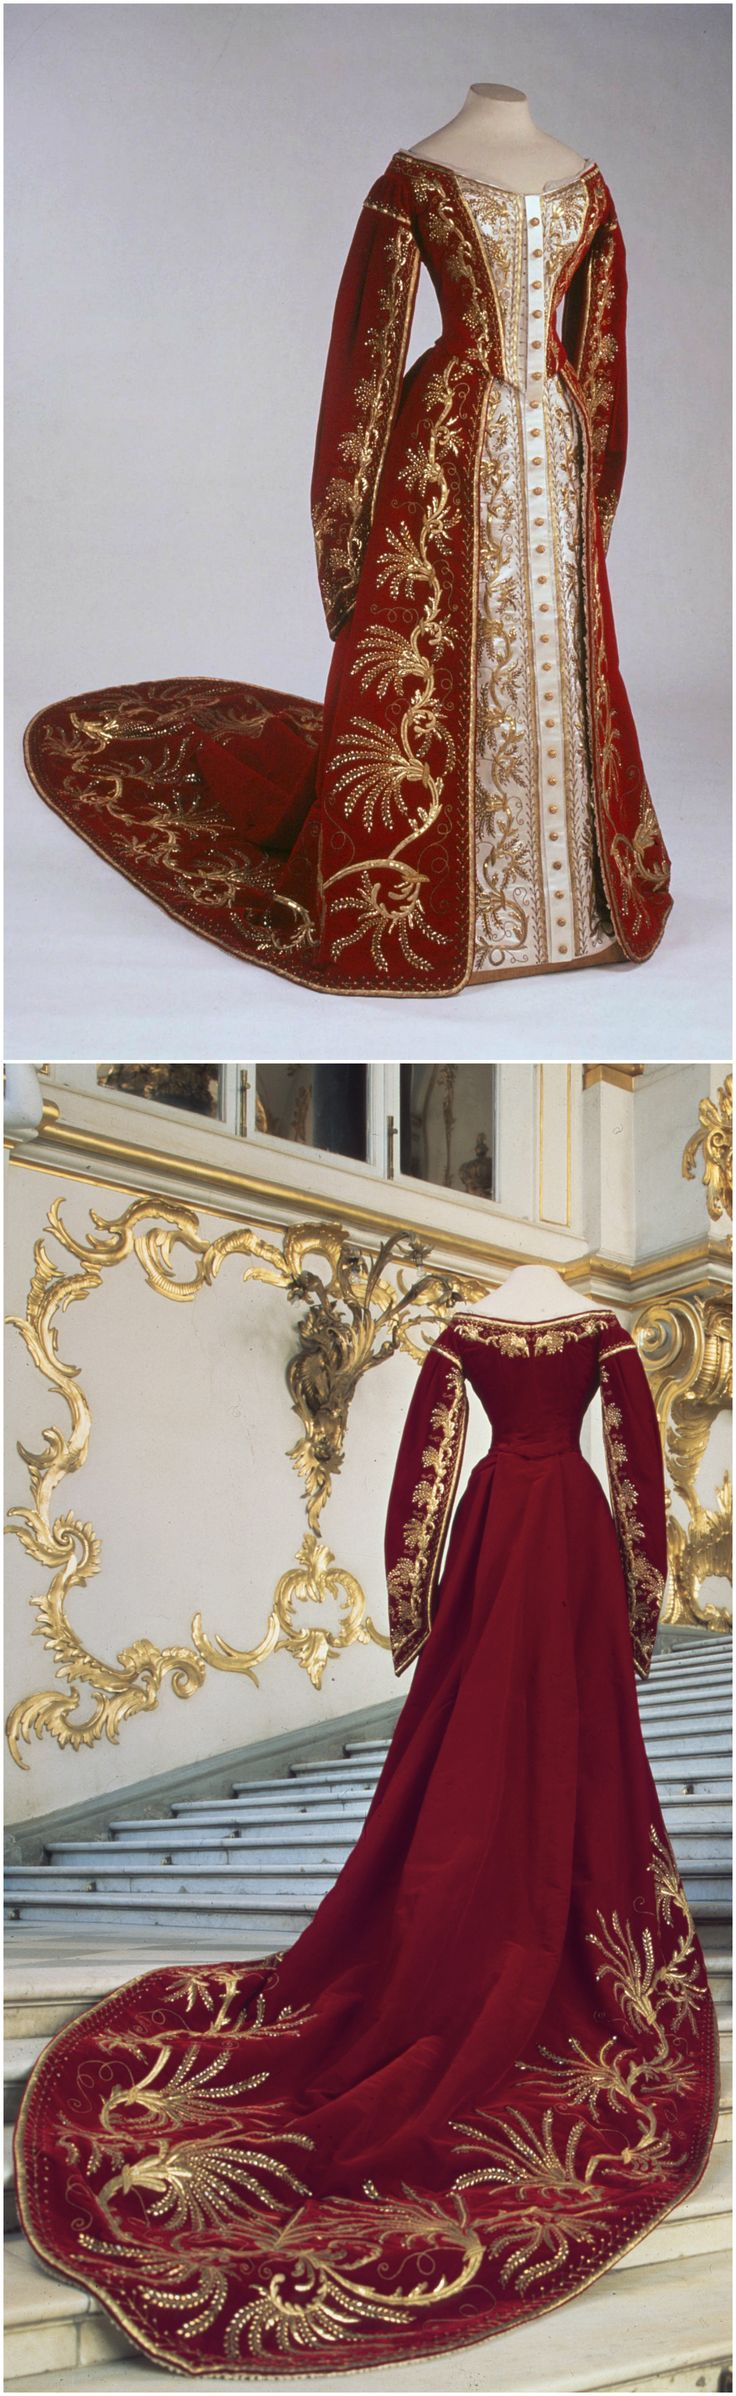 Ceremonial court dress of a maid of honor to the Empress of Russia, Studio of Izambard Chanceau, embroidery studio of A. Laman, 1880-90. Velvet, satin, gold embroidery. Bottom photo by Herman van Heusden, styling: Ruud van der Neut. State Hermitage Museum, St. Petersburg. Link: http://www.hermitagemuseum.org/wps/portal/hermitage/digital-collection/08.+Applied+Arts/1263415/?lng=ru. CLICK THROUGH FOR VERY LARGE IMAGES.